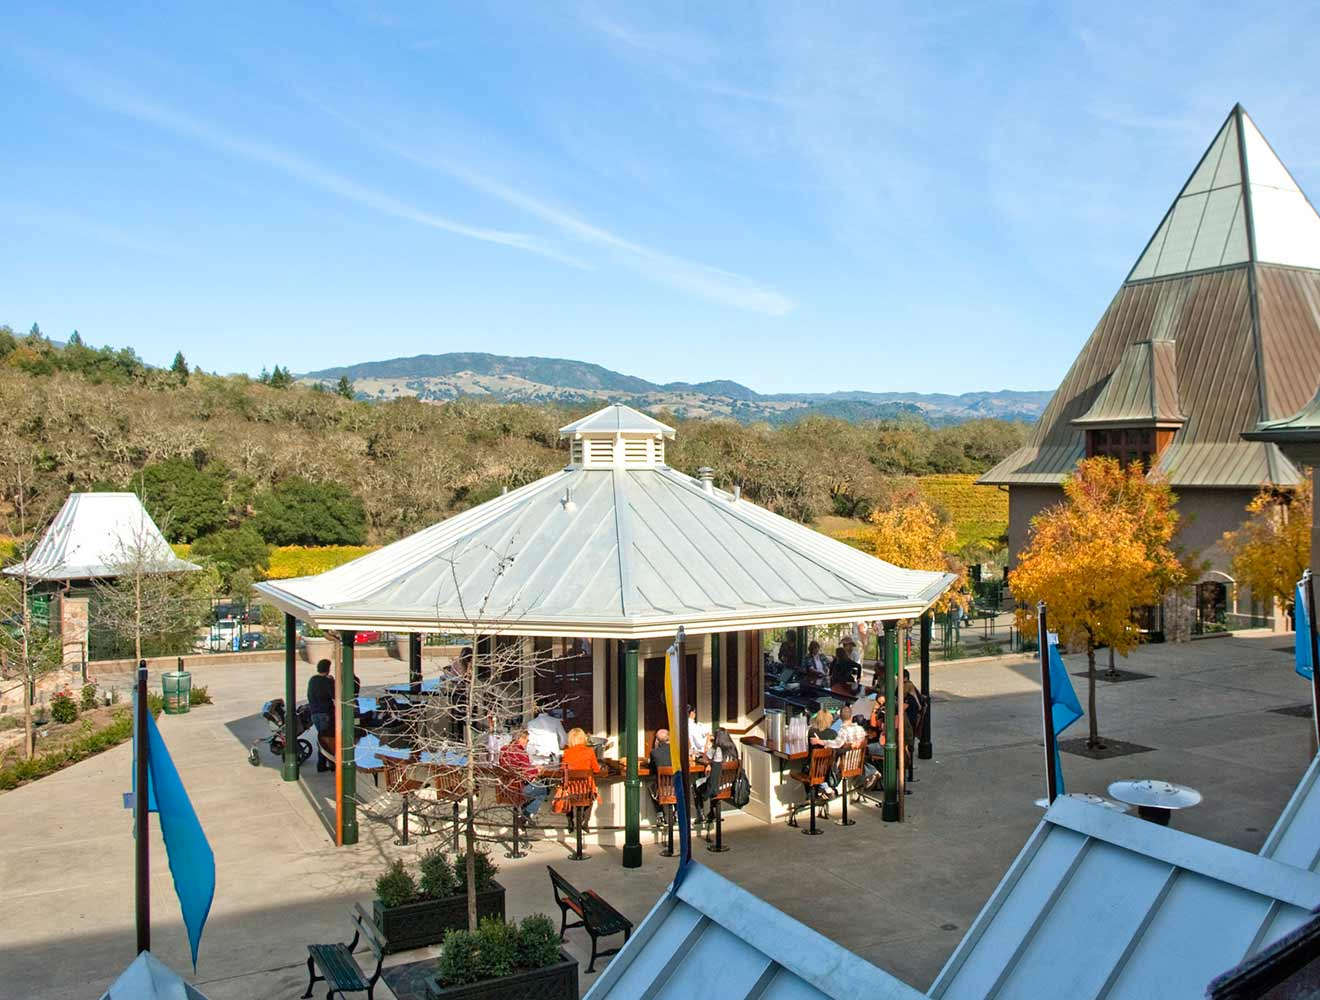 Ford Coppola's Pool & Winery Pool Cafe